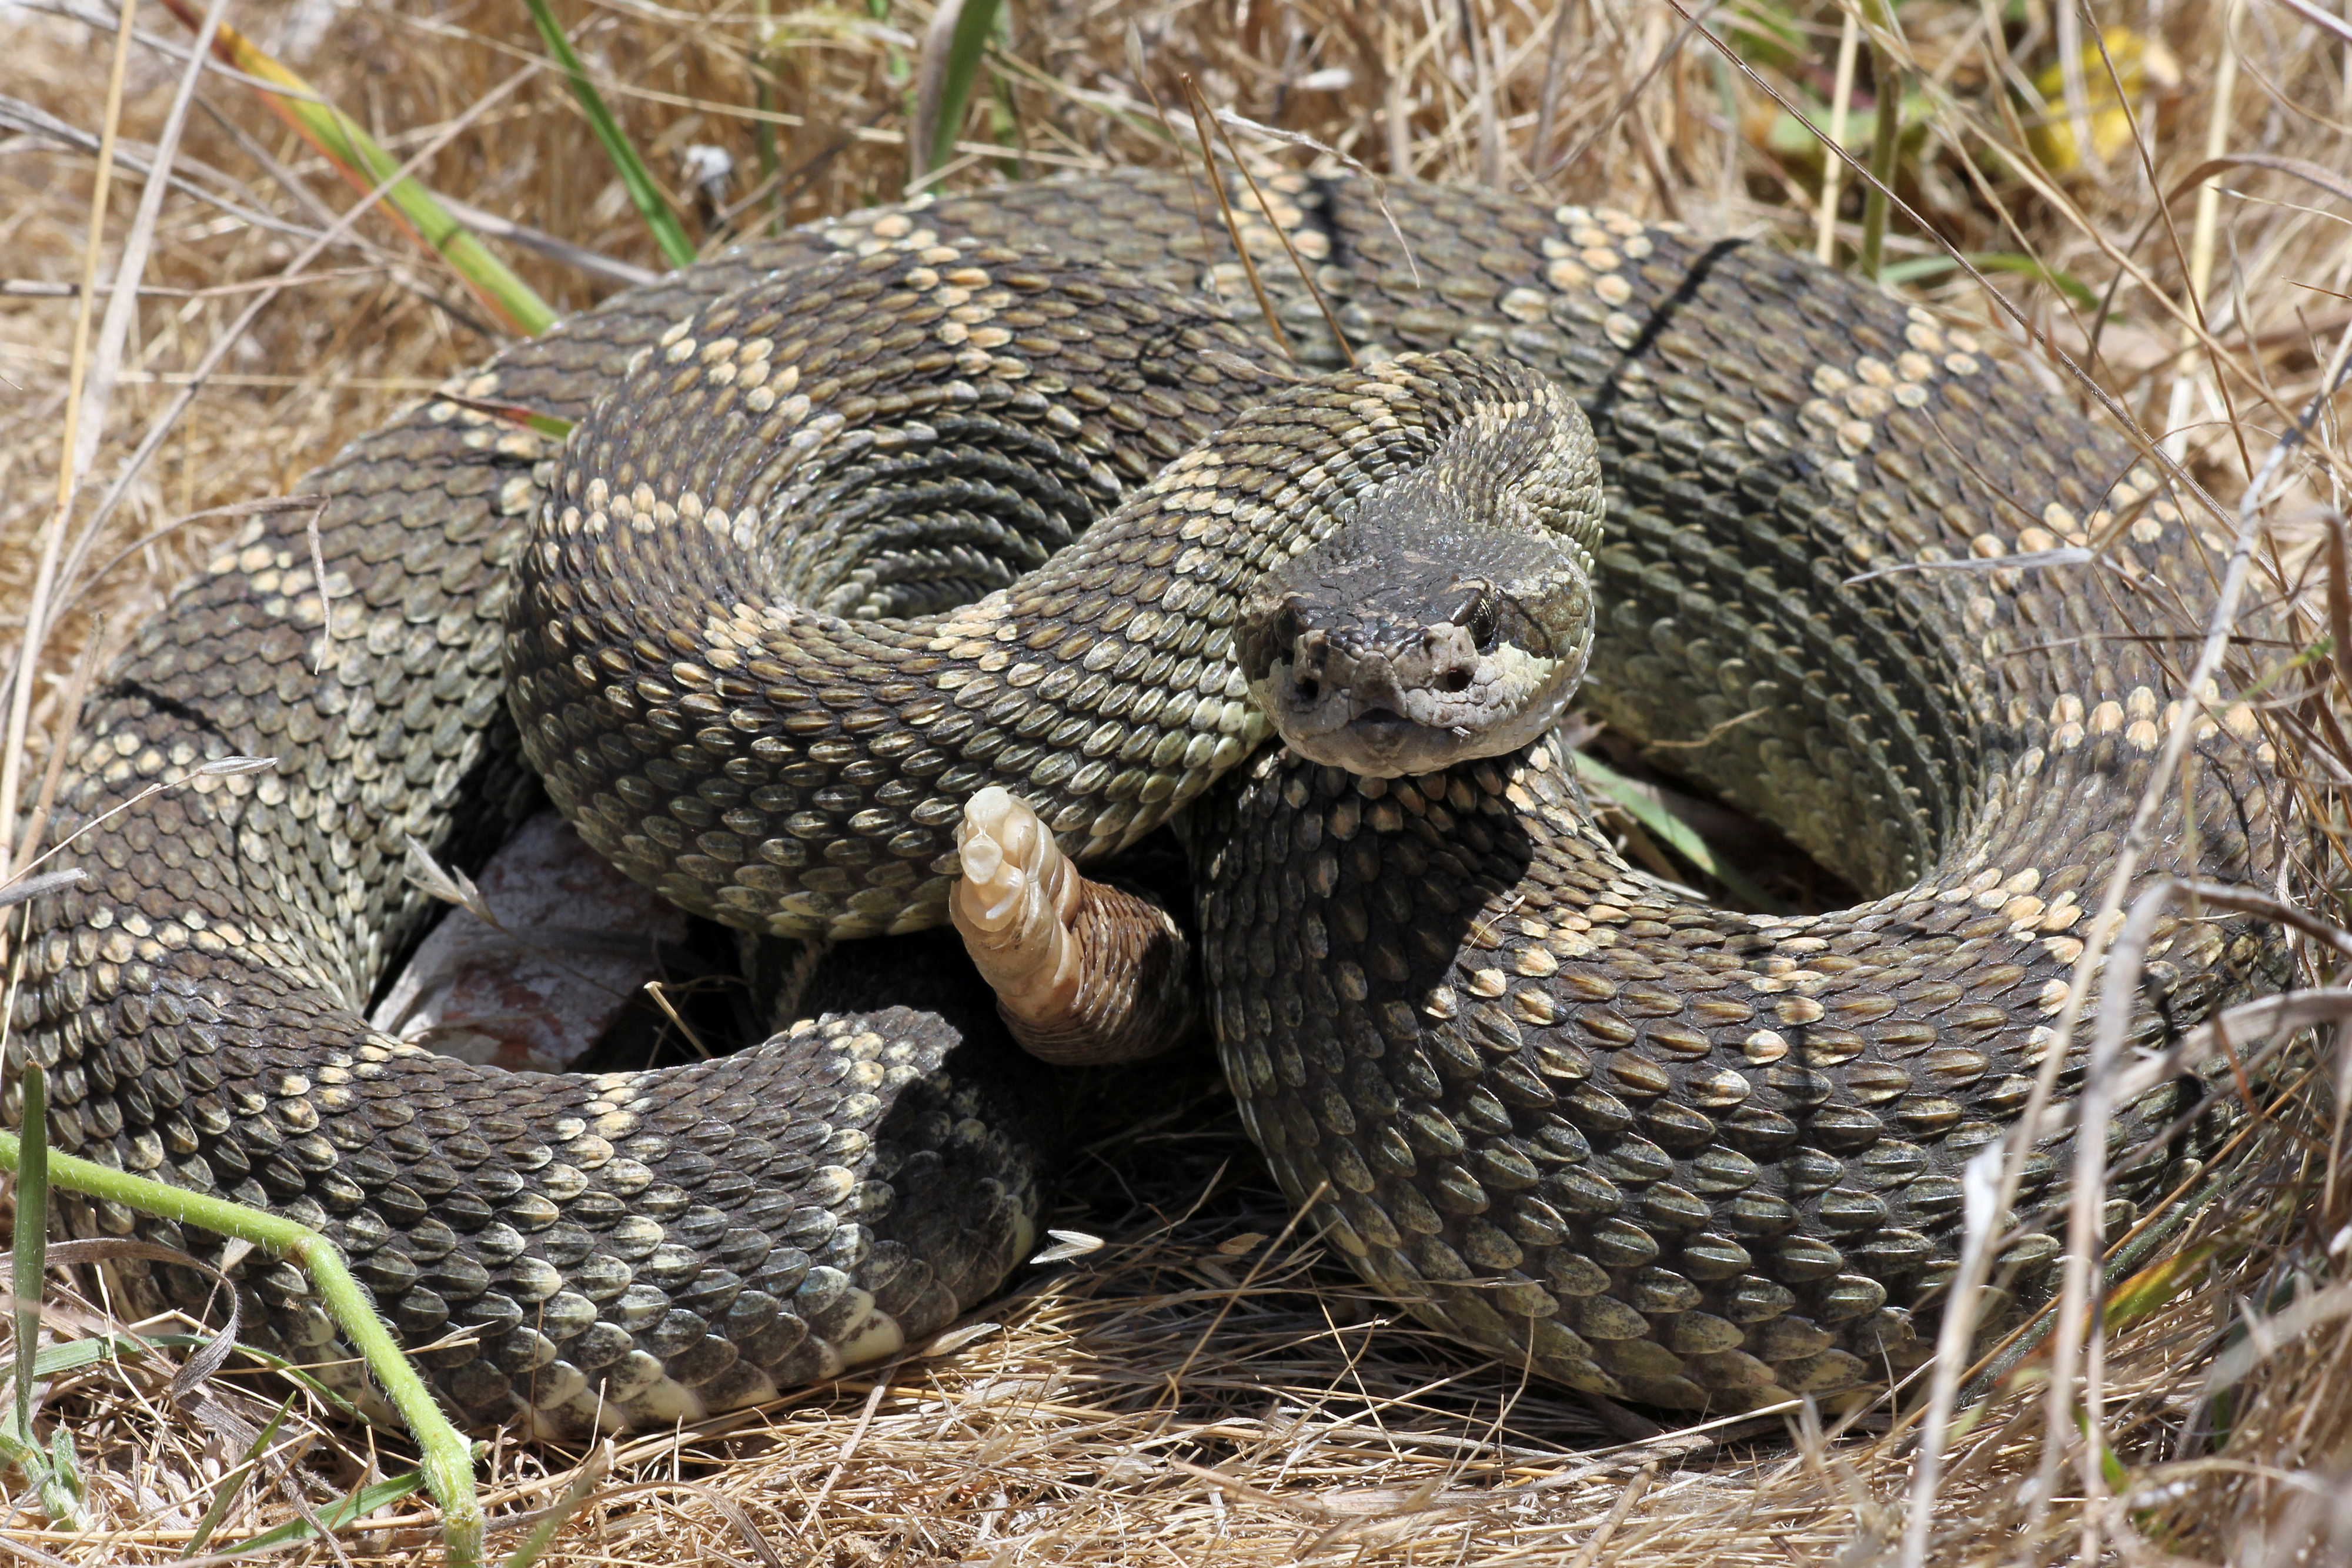 Cdfw Offers Tips For Steering Clear Of Rattlesnakes As The Weather Warms Up Cdfw News,Types Of Cacti With Pictures